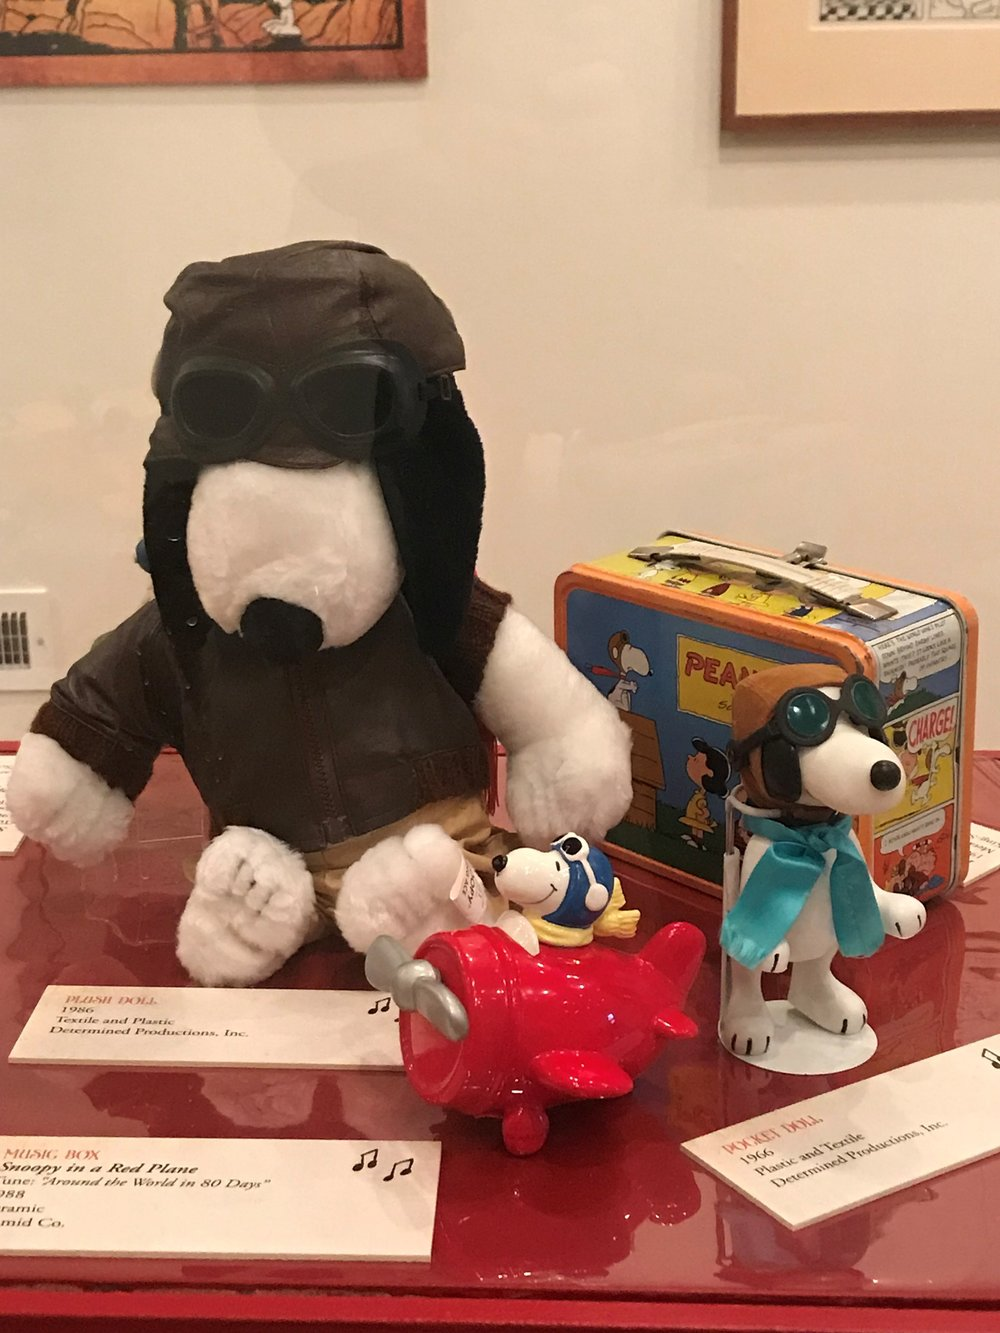 The popularity of Snoopy as a World War I flying ace prompted stuffed animals, collectibles, and even a lunchbox